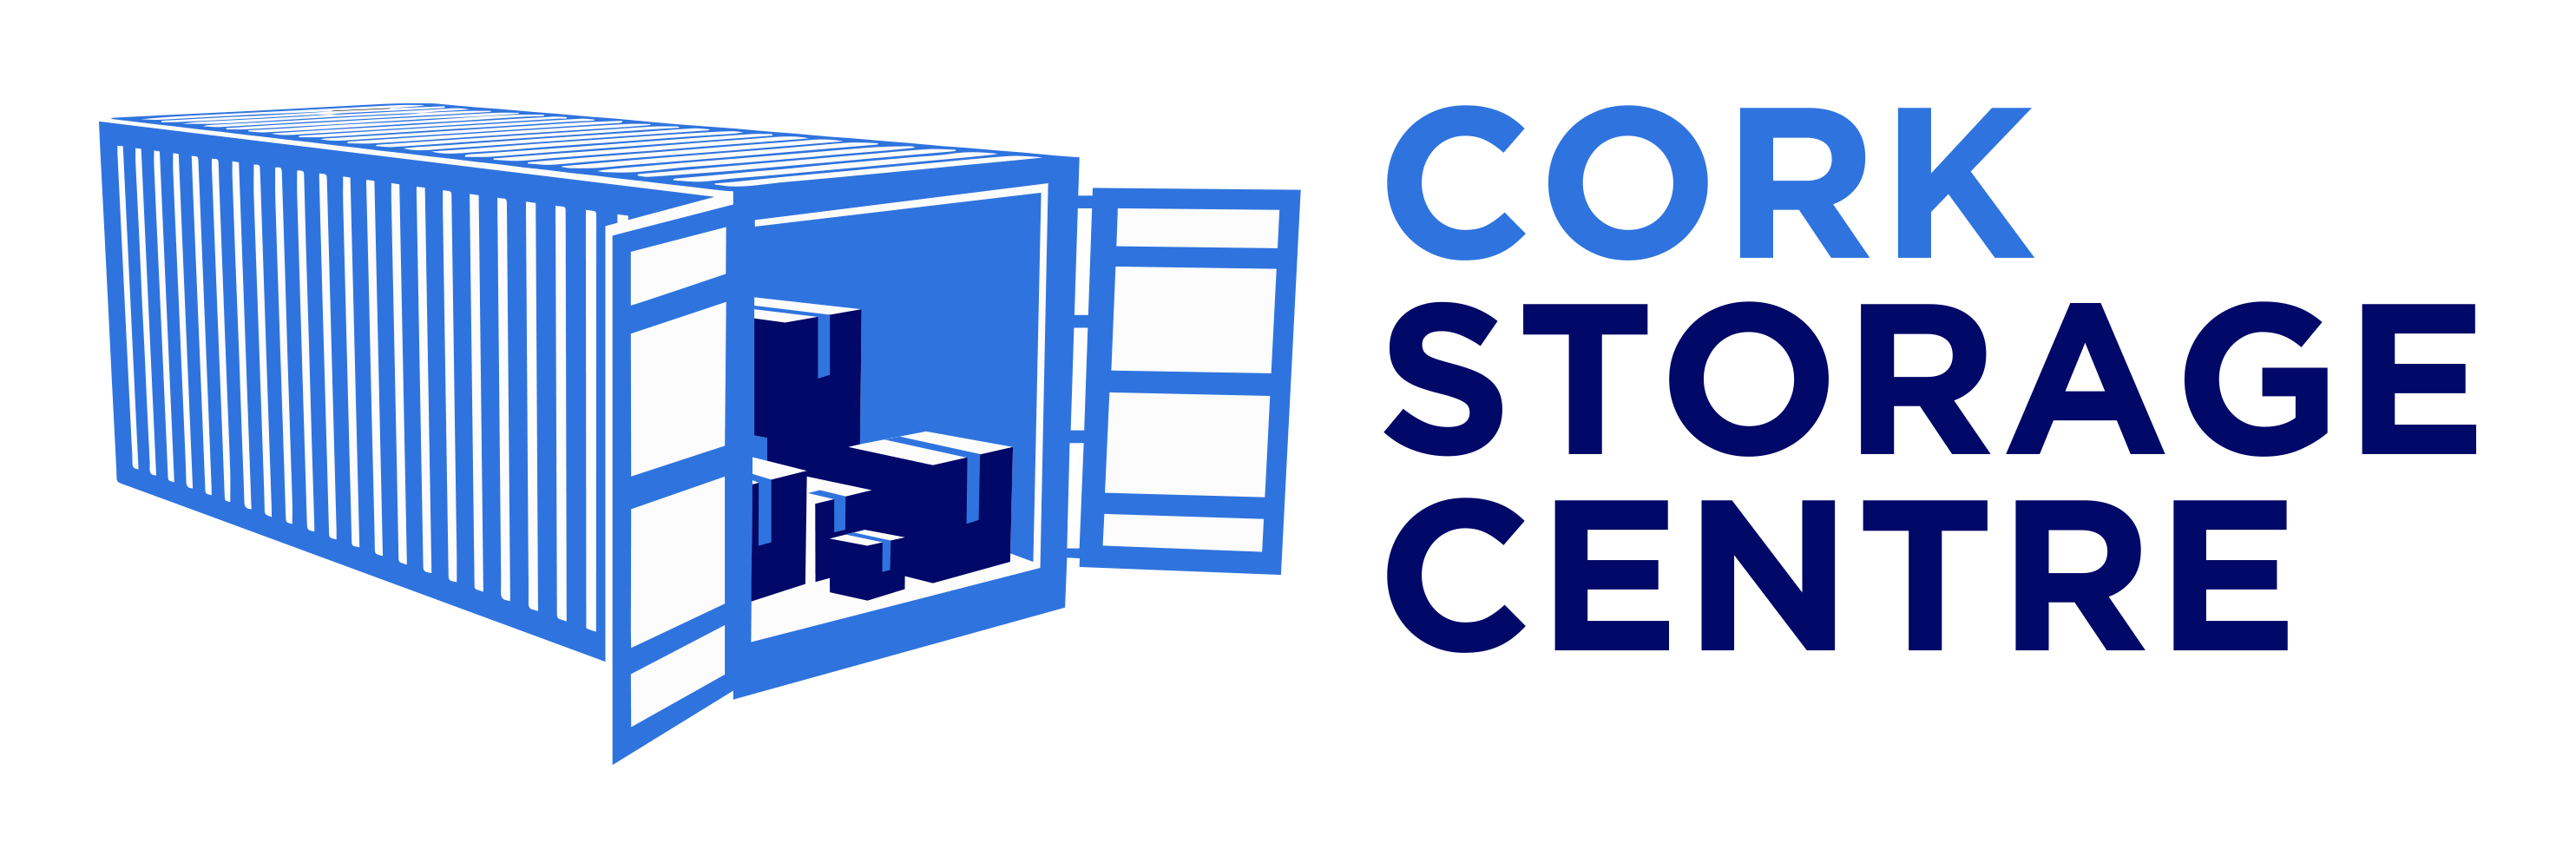 cork storage centre logo